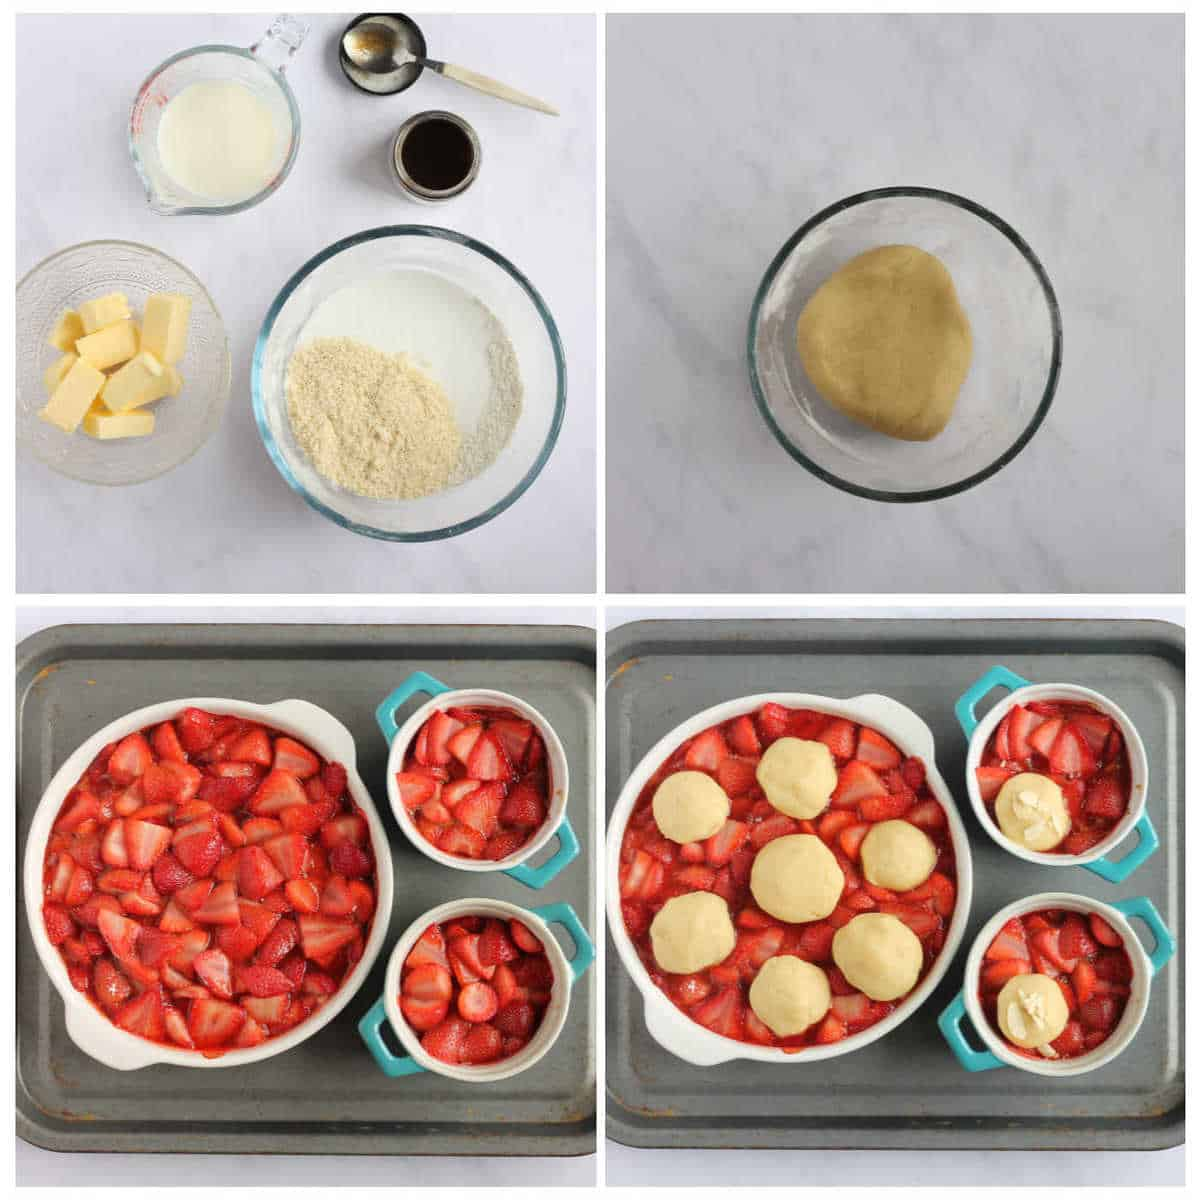 Cobbler topping step by step photos for strawberry cobbler recipe.